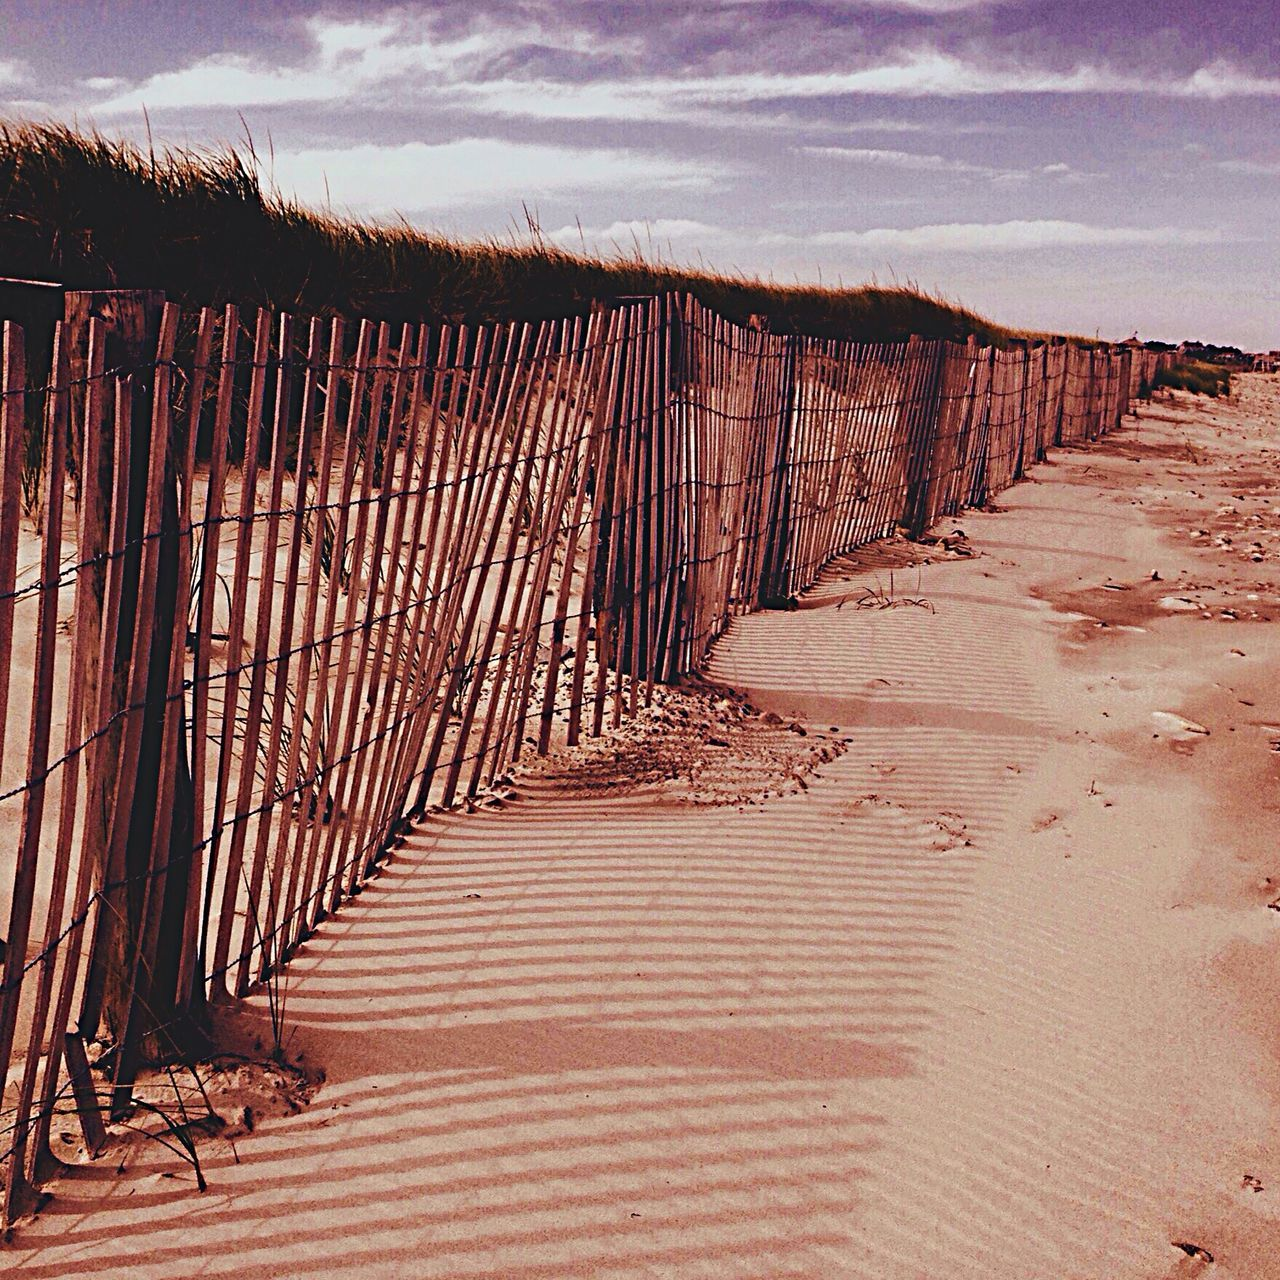 outdoors, day, landscape, sky, sand, nature, no people